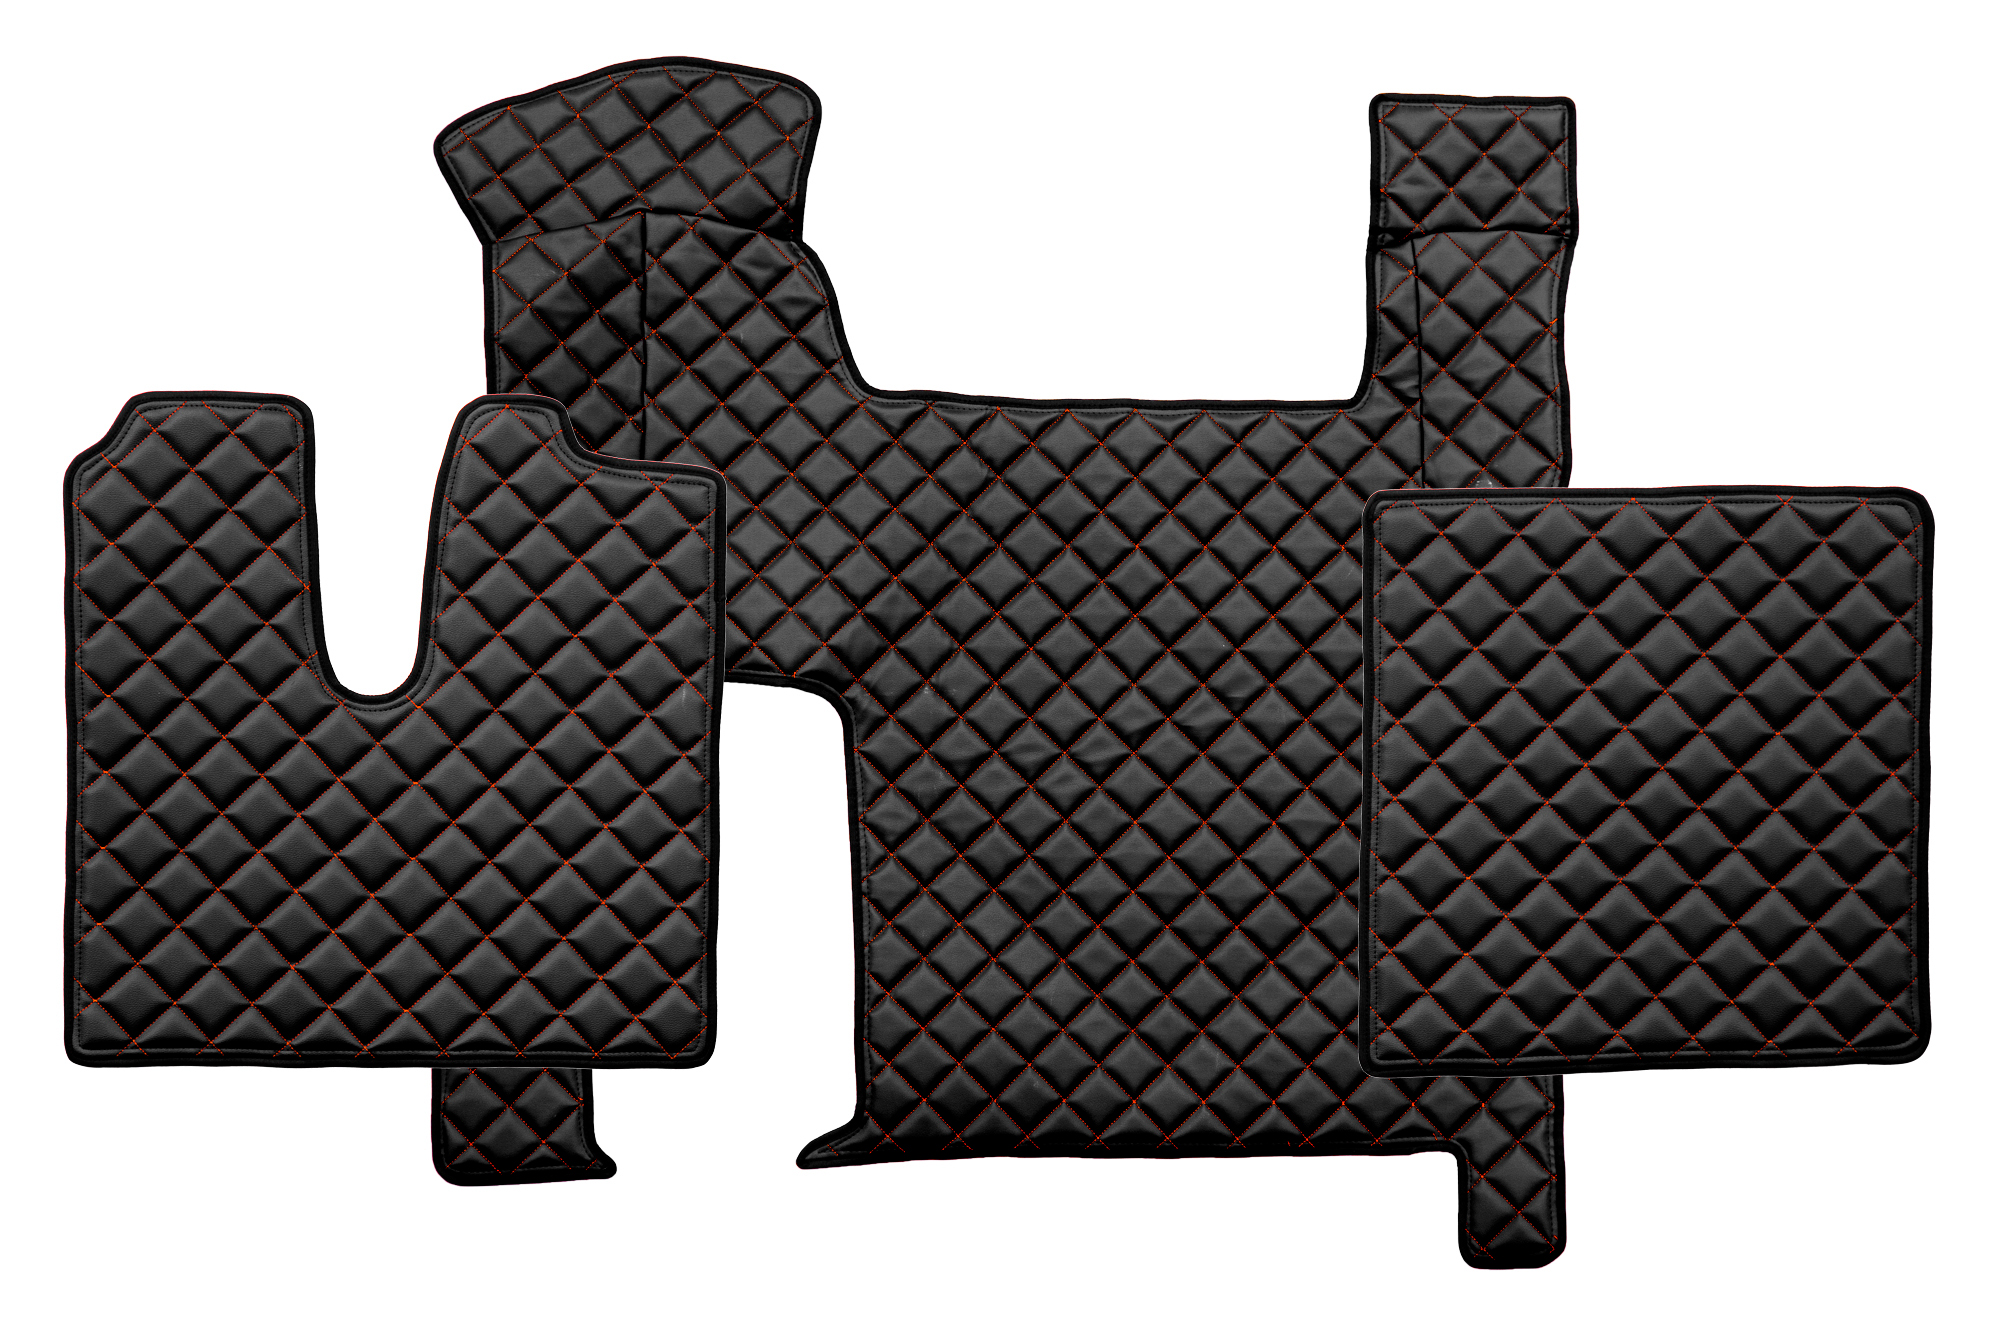 Fl06 Full Coverage Floor Mats Eco Leather Man Tgx